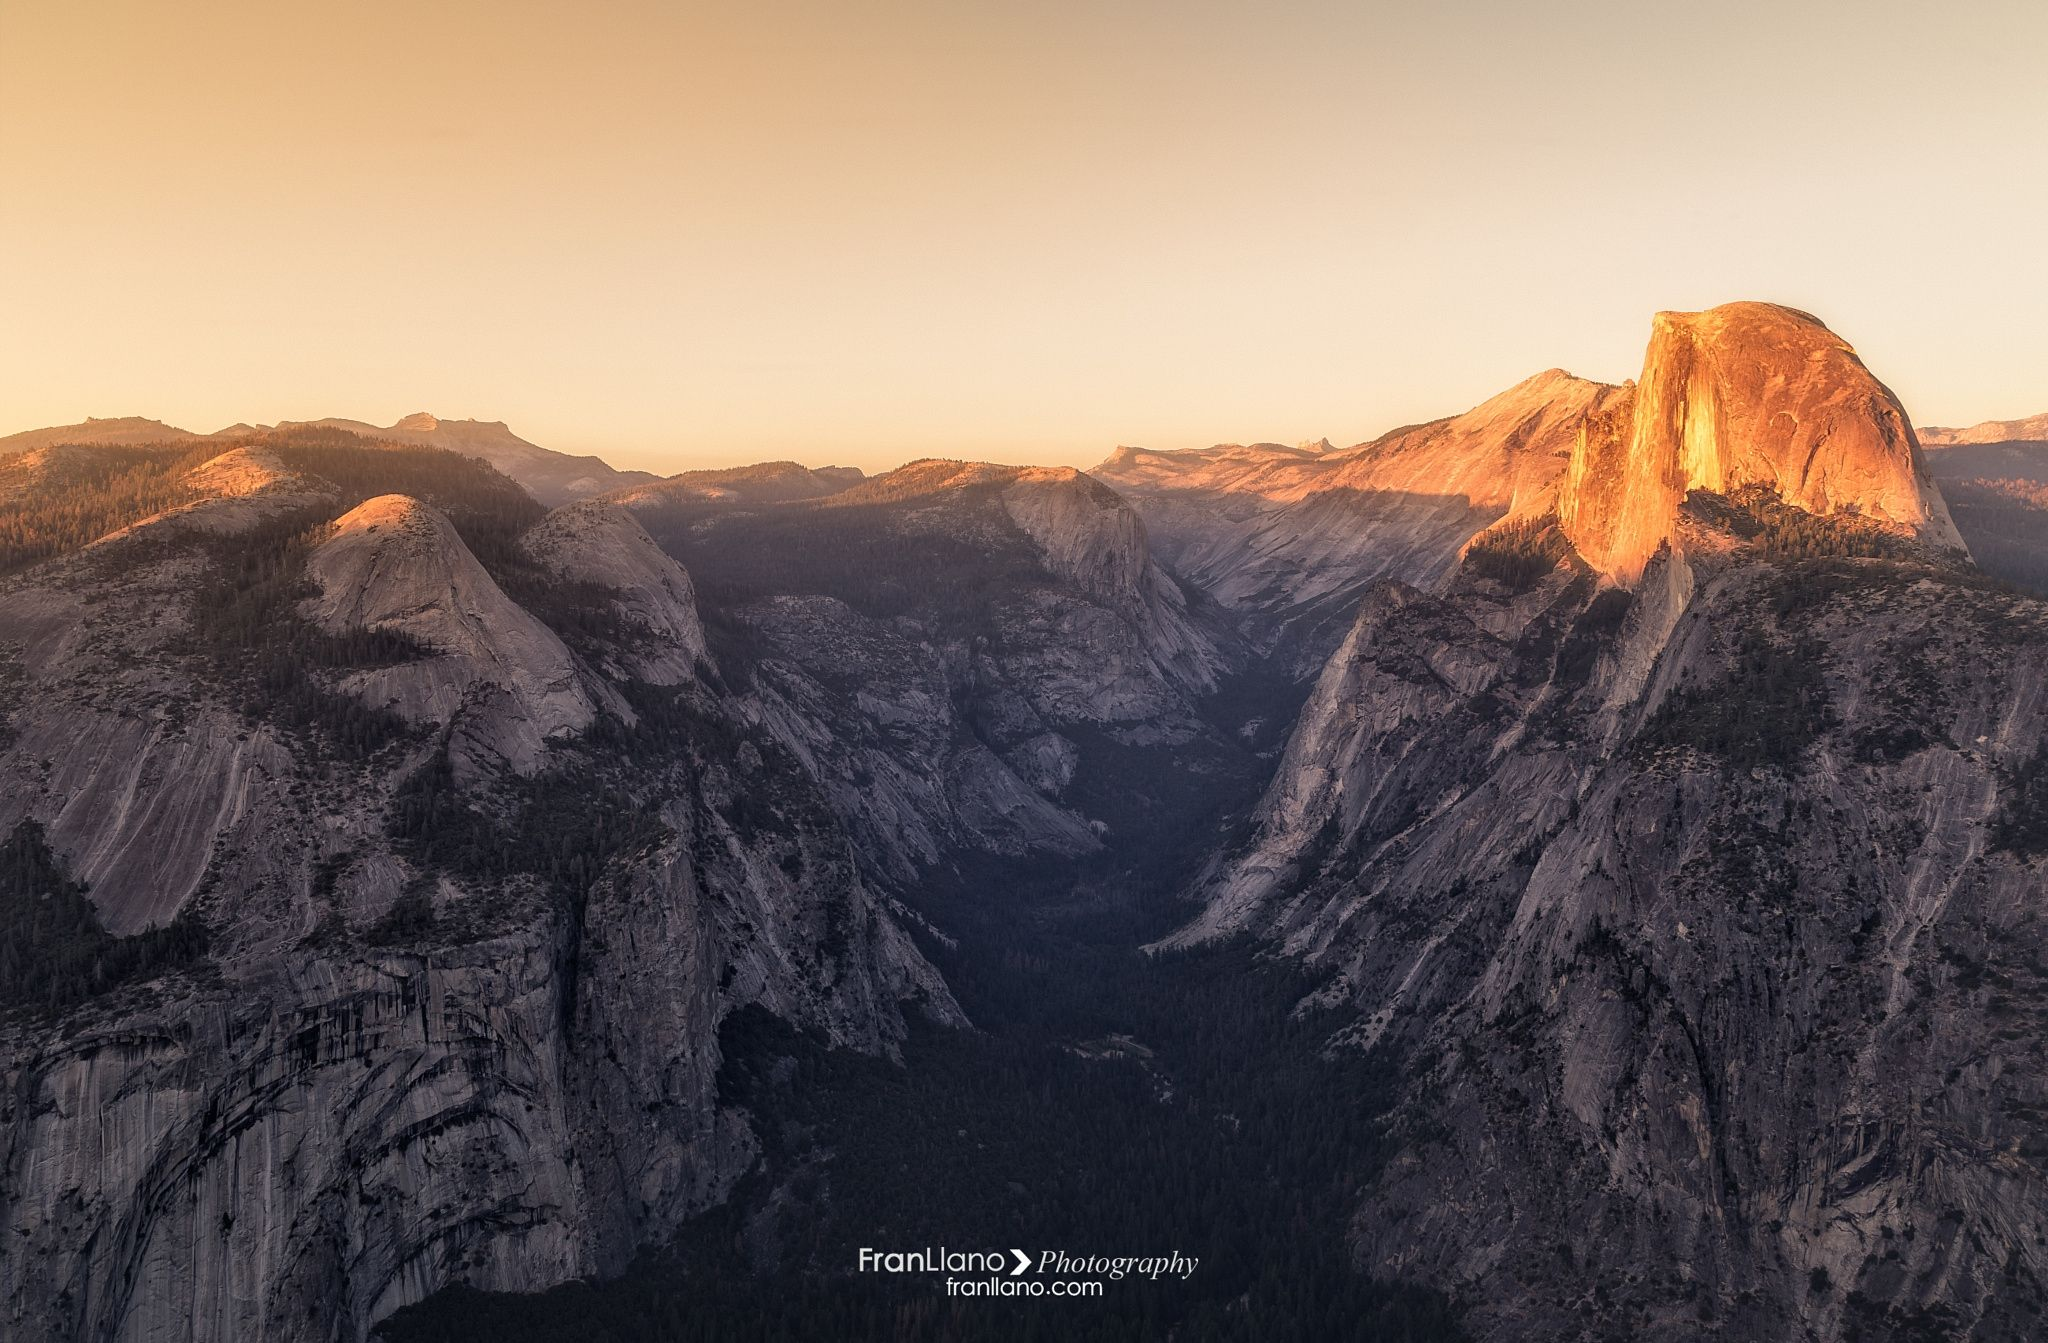 Glacier Point - Yosemite National Park, USA  Facebook page-> www.facebook.com/franllanophotography web-> www.franllano.com